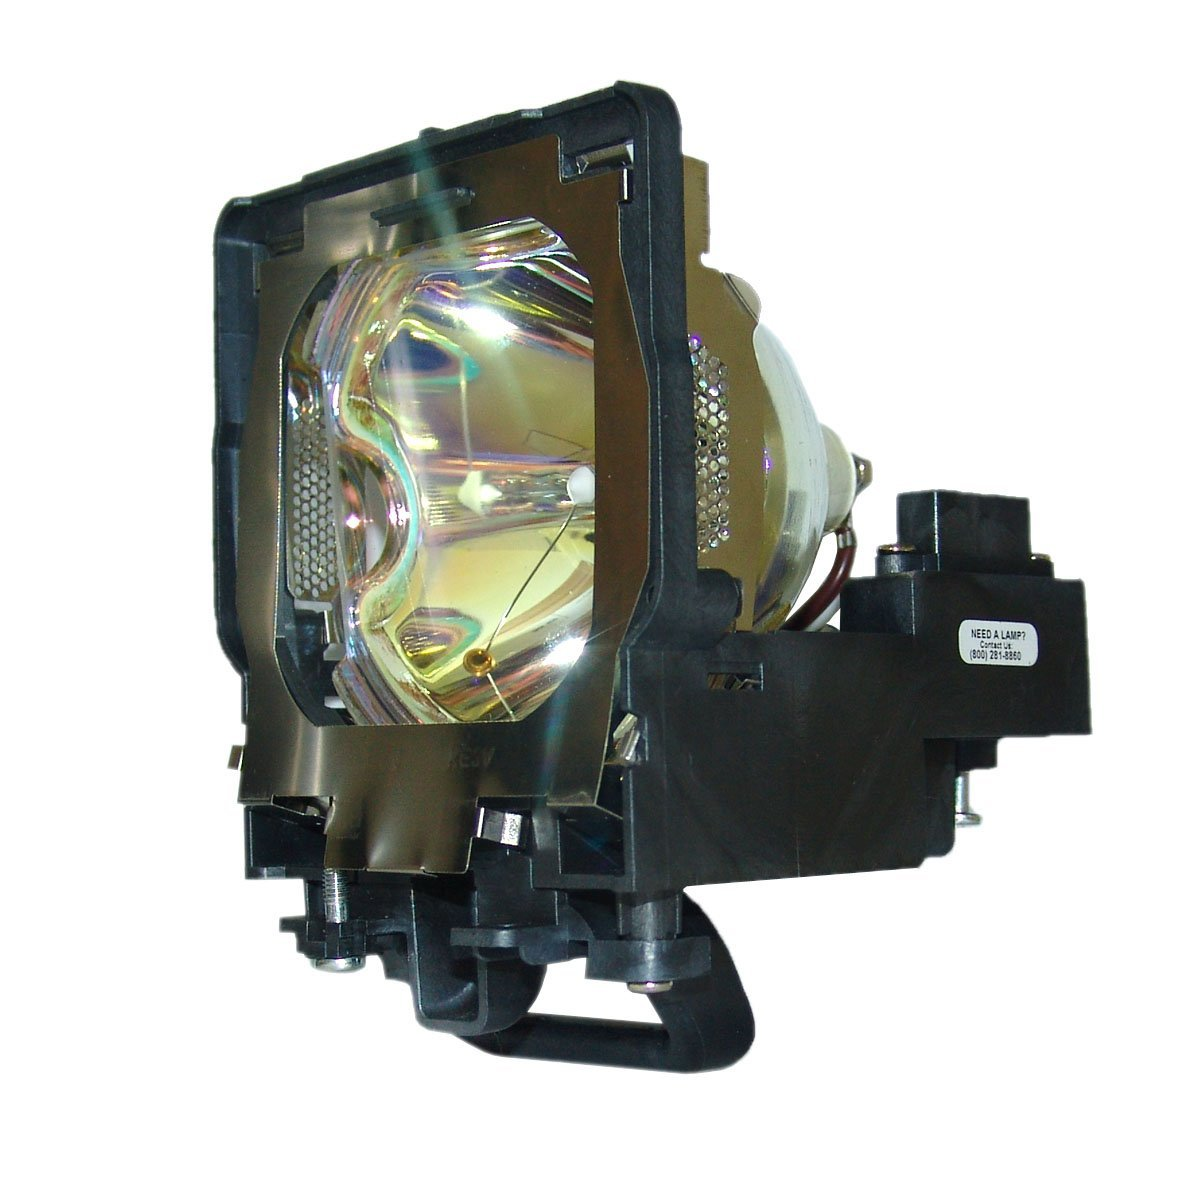 Projector Lamp Bulb POA-LMP109 LMP109 610-334-6267 for SANYO PLC-XF47 PLC-XF47W LC-XT5 LX1500 with housing compatible projector lamp eiki 610 334 6267 poa lmp109 lc xt5d lc xt5ai